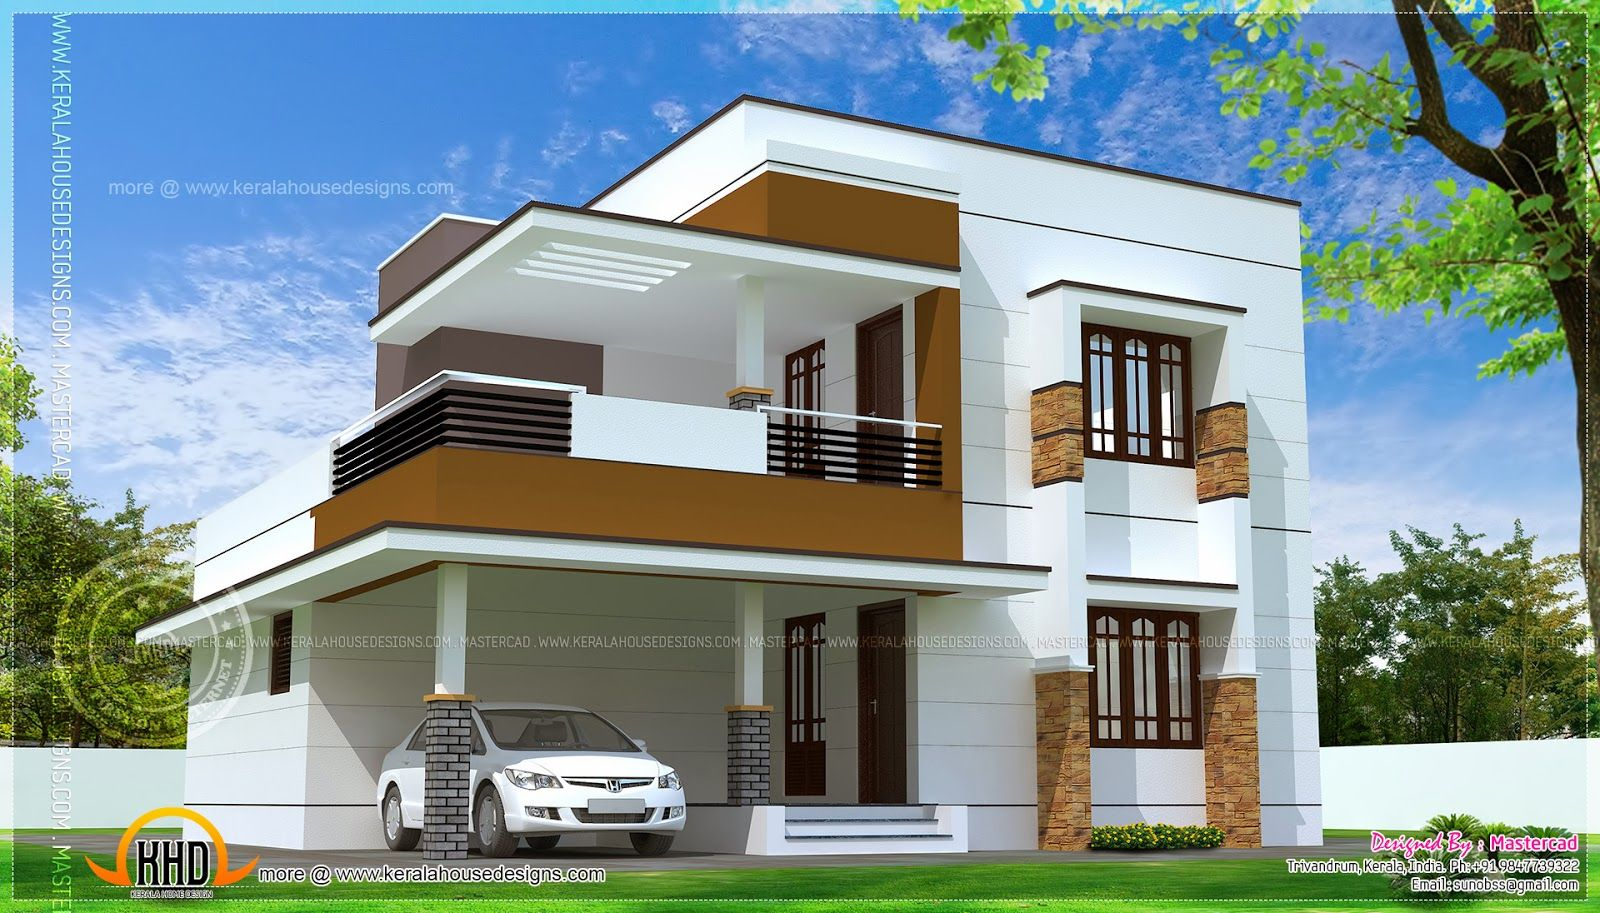 Contemporary Modern Home Plans modern house plans erven 500sq m | simple modern home design in